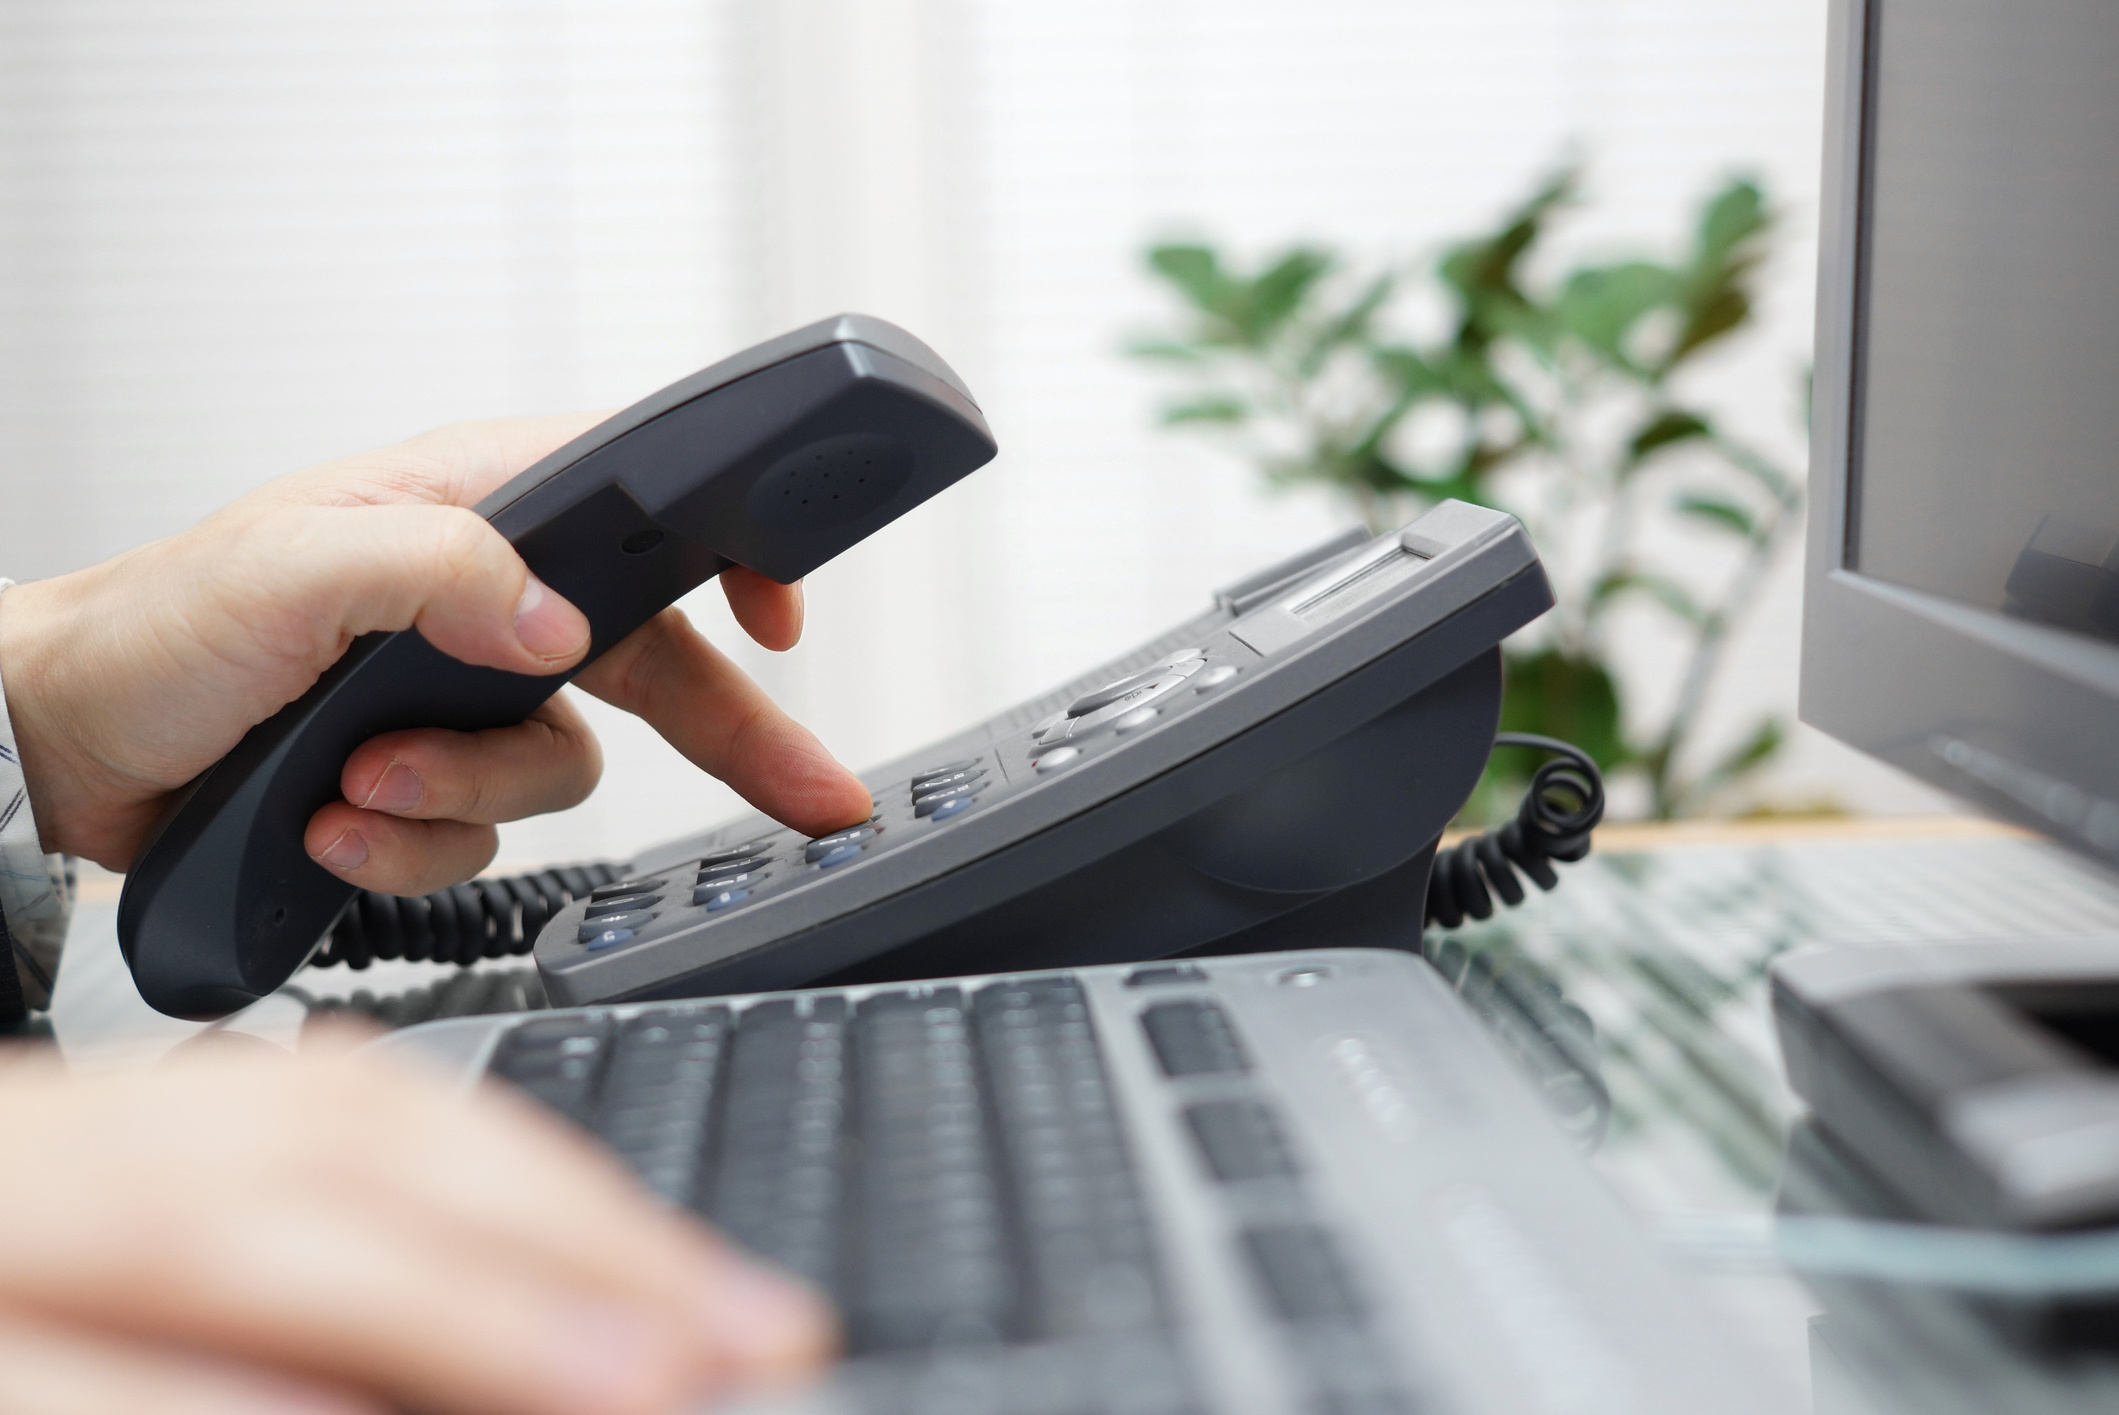 pick up phone and call customer service